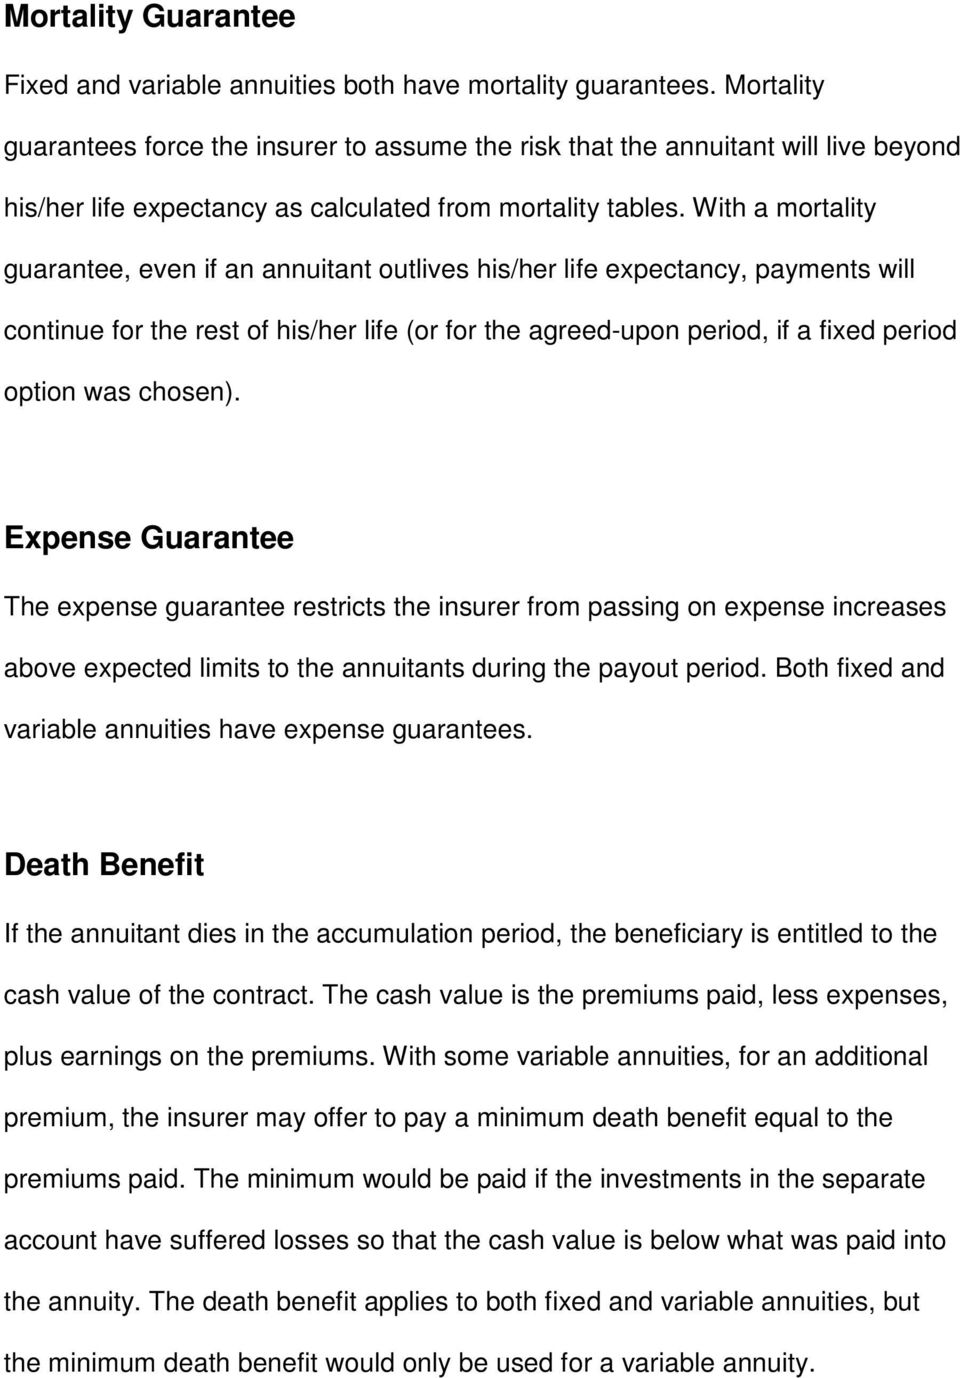 With a mortality guarantee, even if an annuitant outlives his/her life expectancy, payments will continue for the rest of his/her life (or for the agreed-upon period, if a fixed period option was